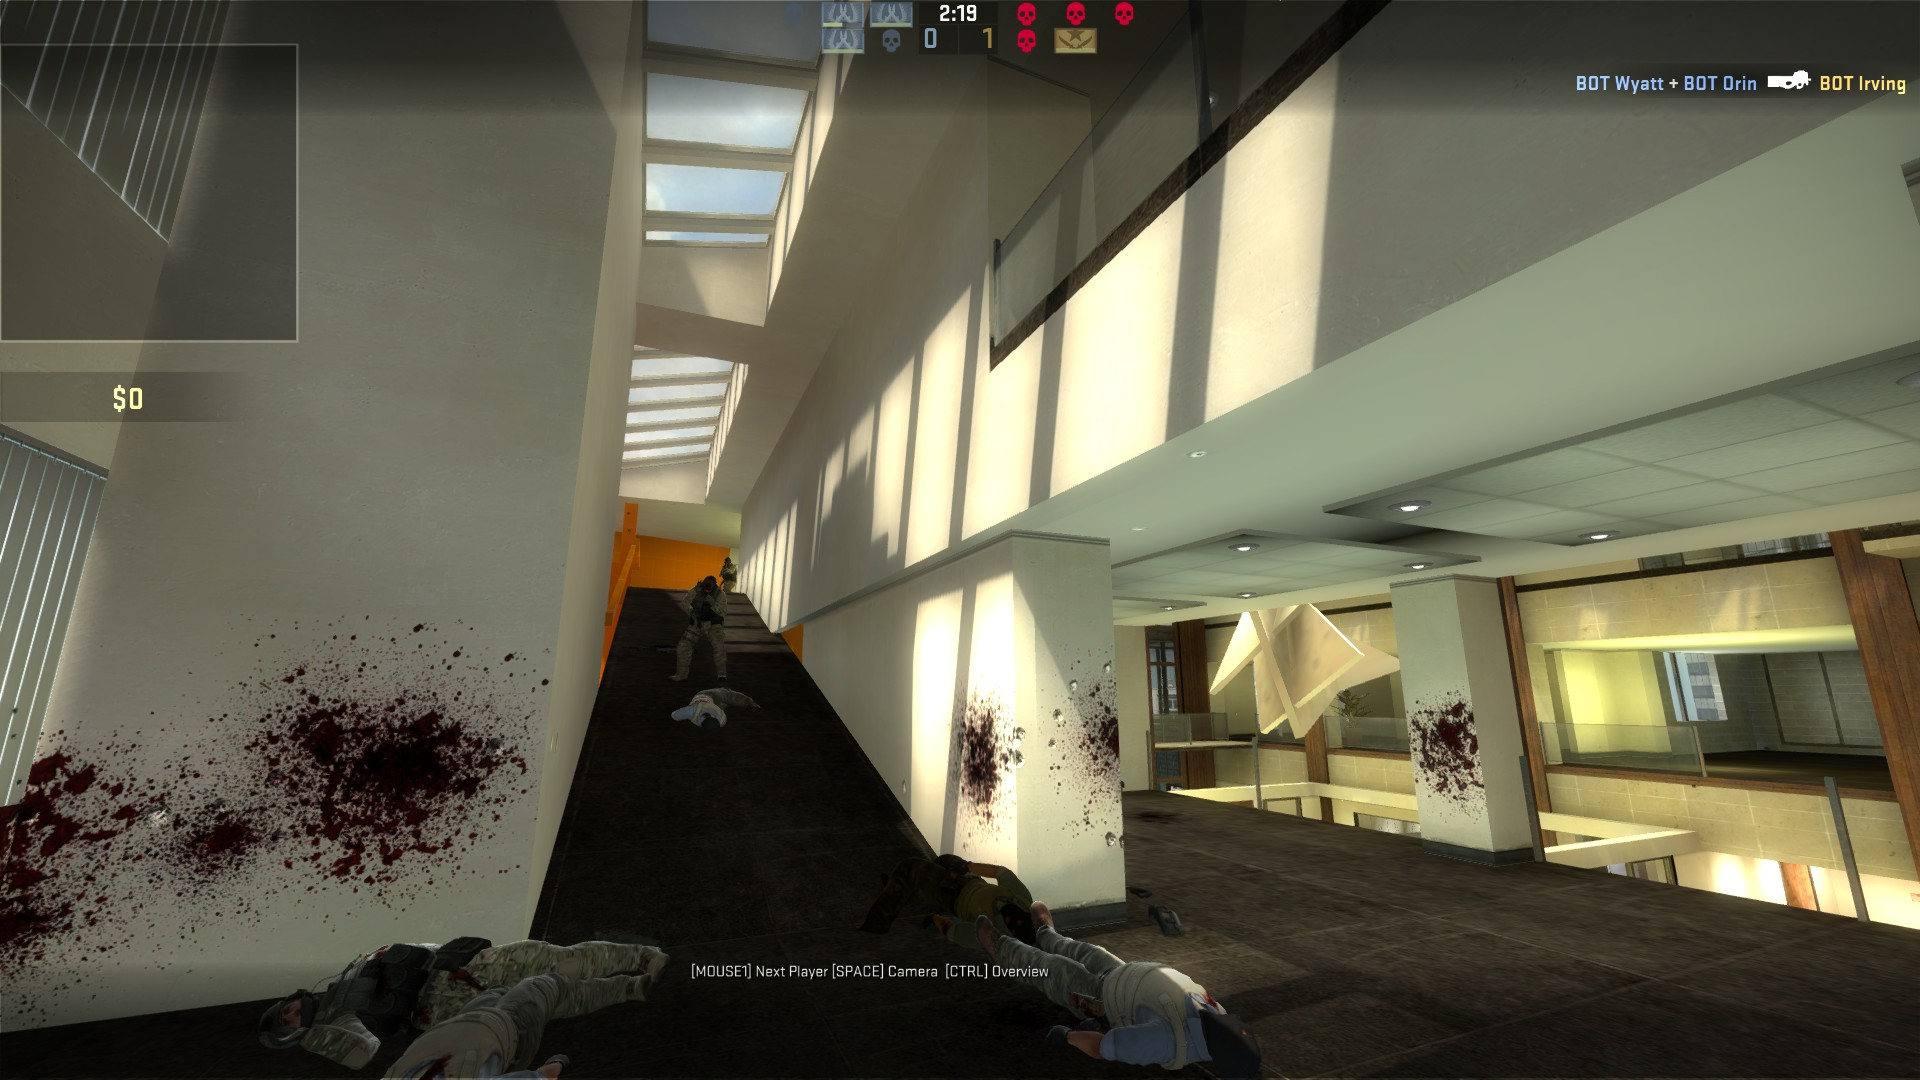 de_boardroom_lighttest_nonamed0002